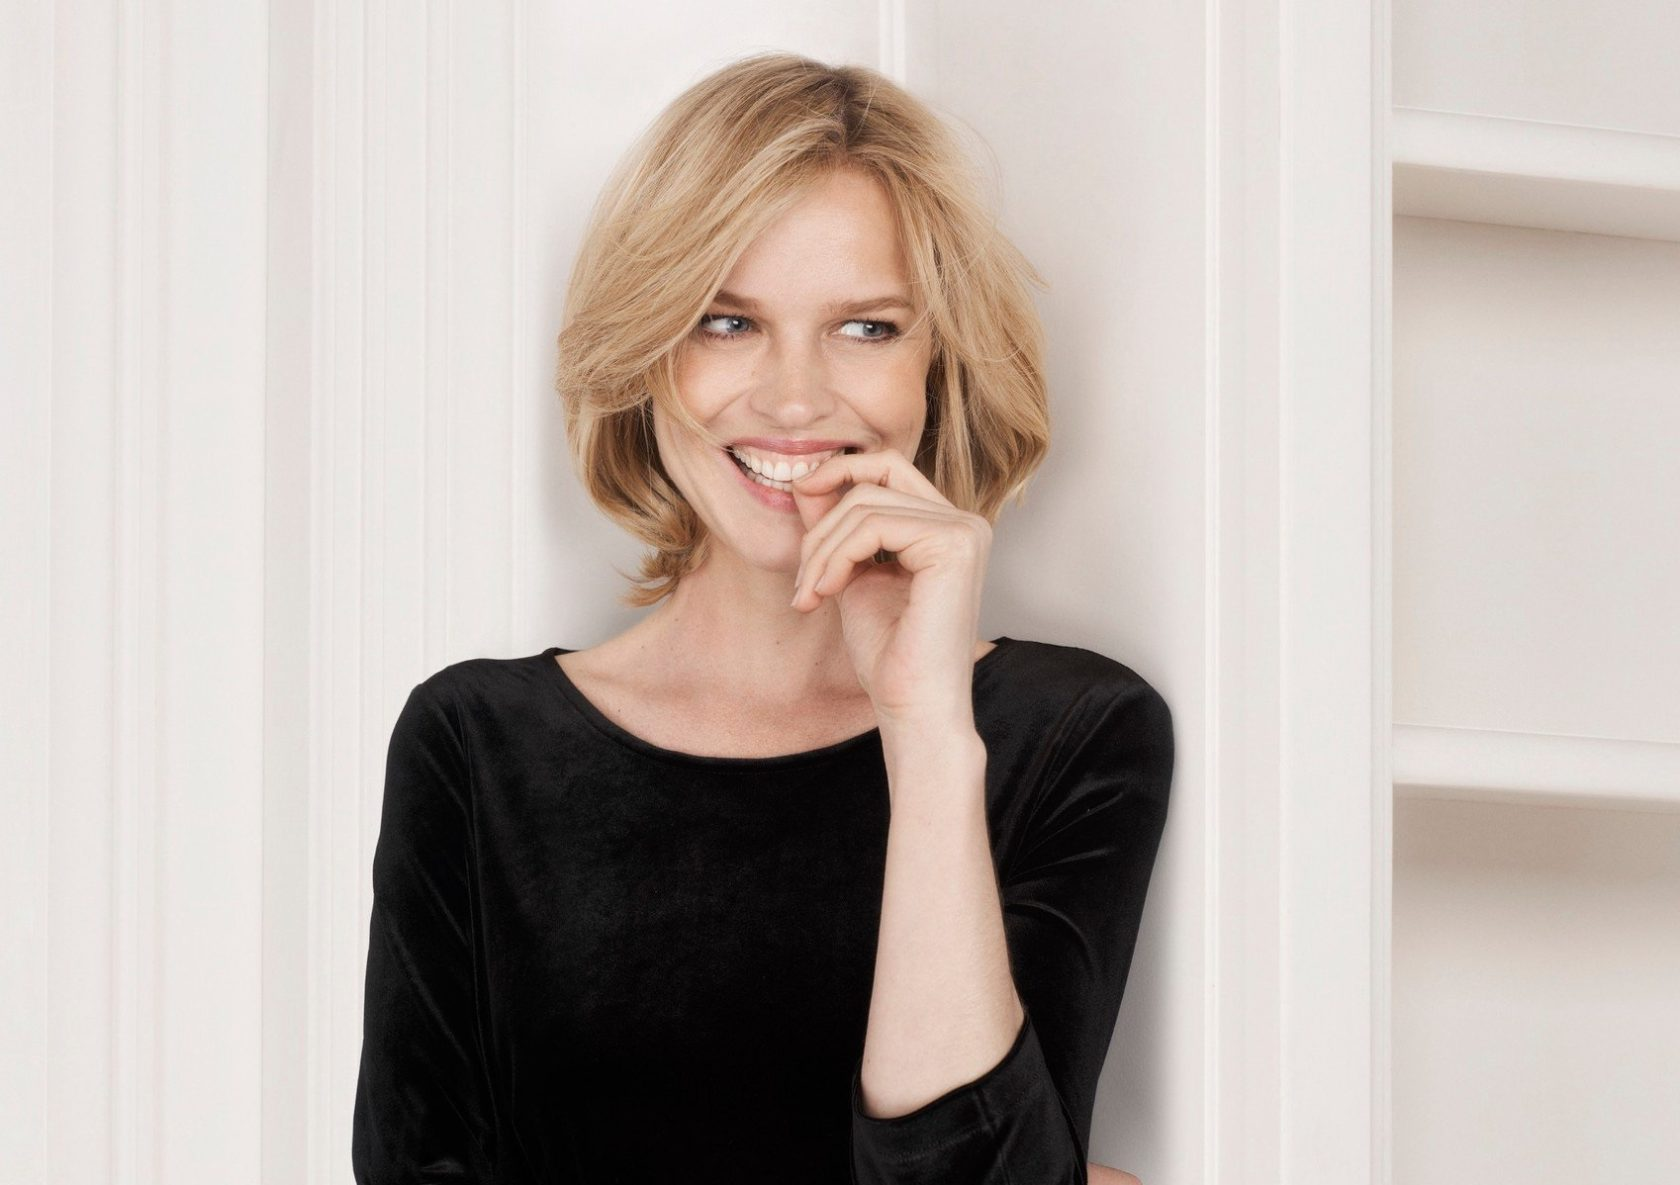 NOT FOR COVER USAGE. Eva Herzigova wearing GERRY WEBER - the New Capsule Collection, Image: 352042361, License: Rights-managed, Restrictions: FOR EDITORIAL USE ONLY. NOT FOR COVER USAGE., Model Release: no, Credit line: Profimedia, TEMP Camerapress